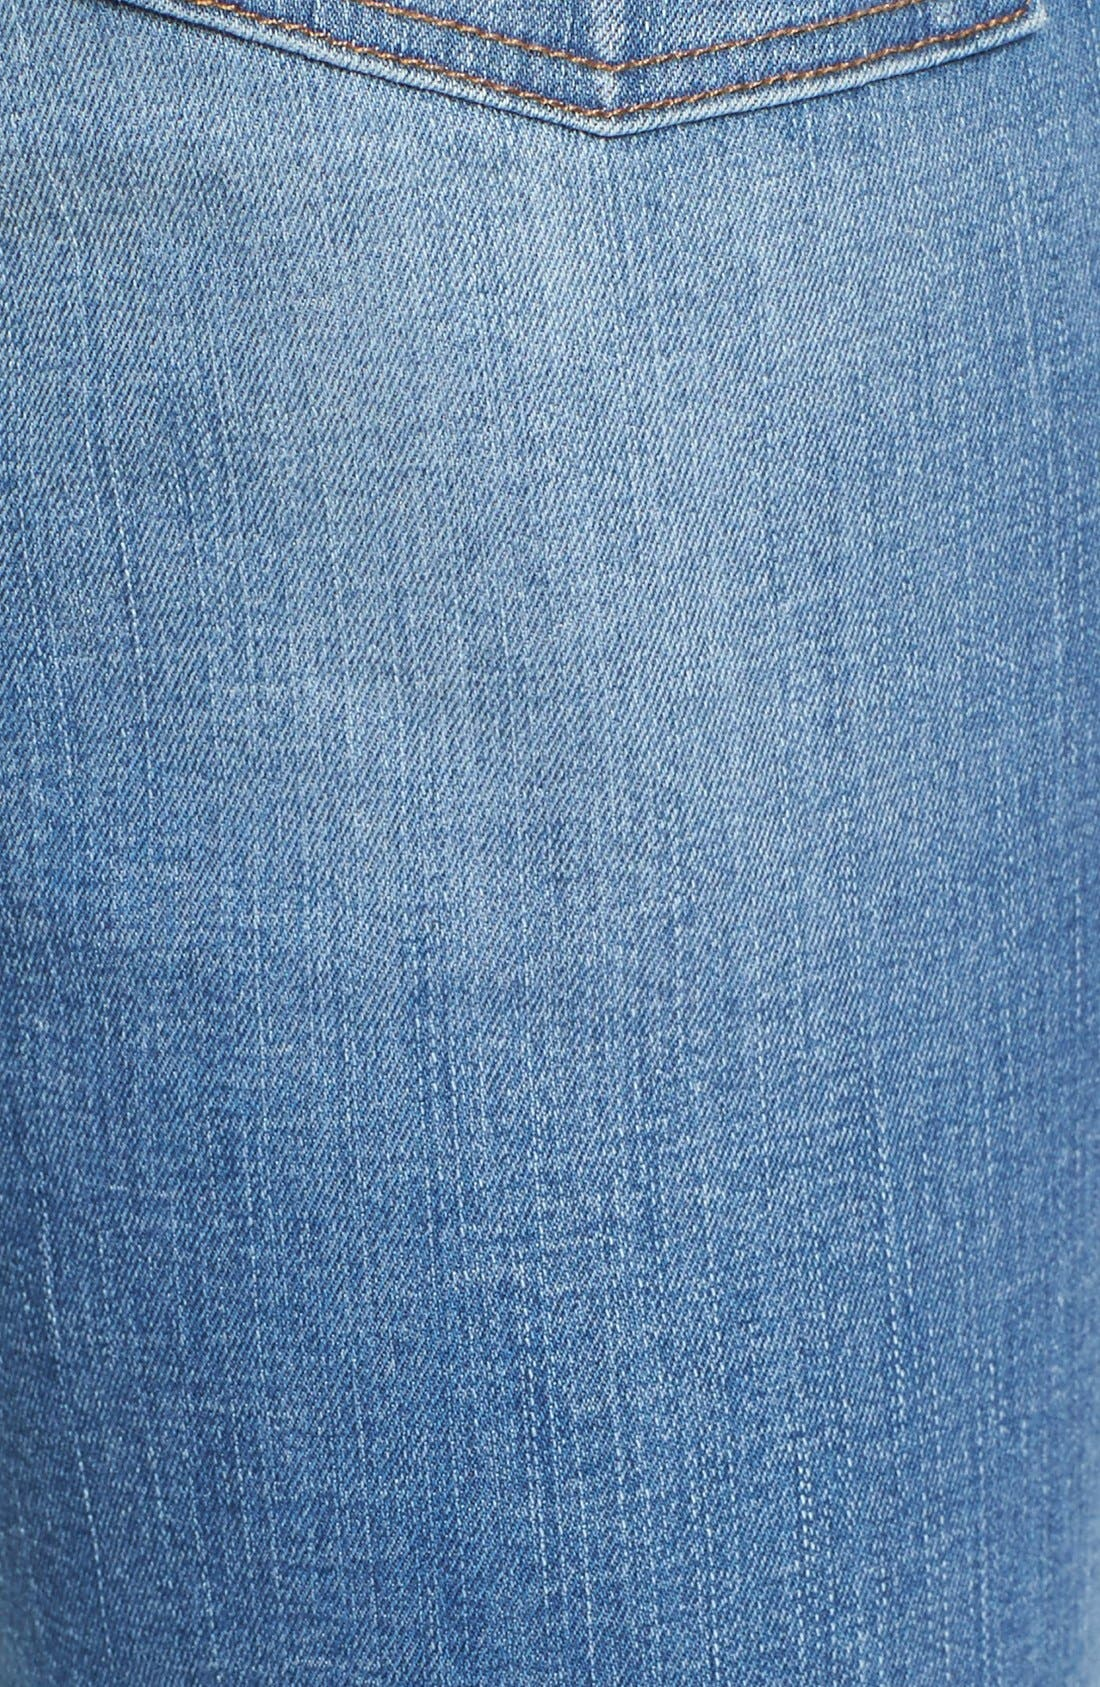 'High Riser - Button Through' Crop Skinny Skinny Jeans,                             Alternate thumbnail 3, color,                             406